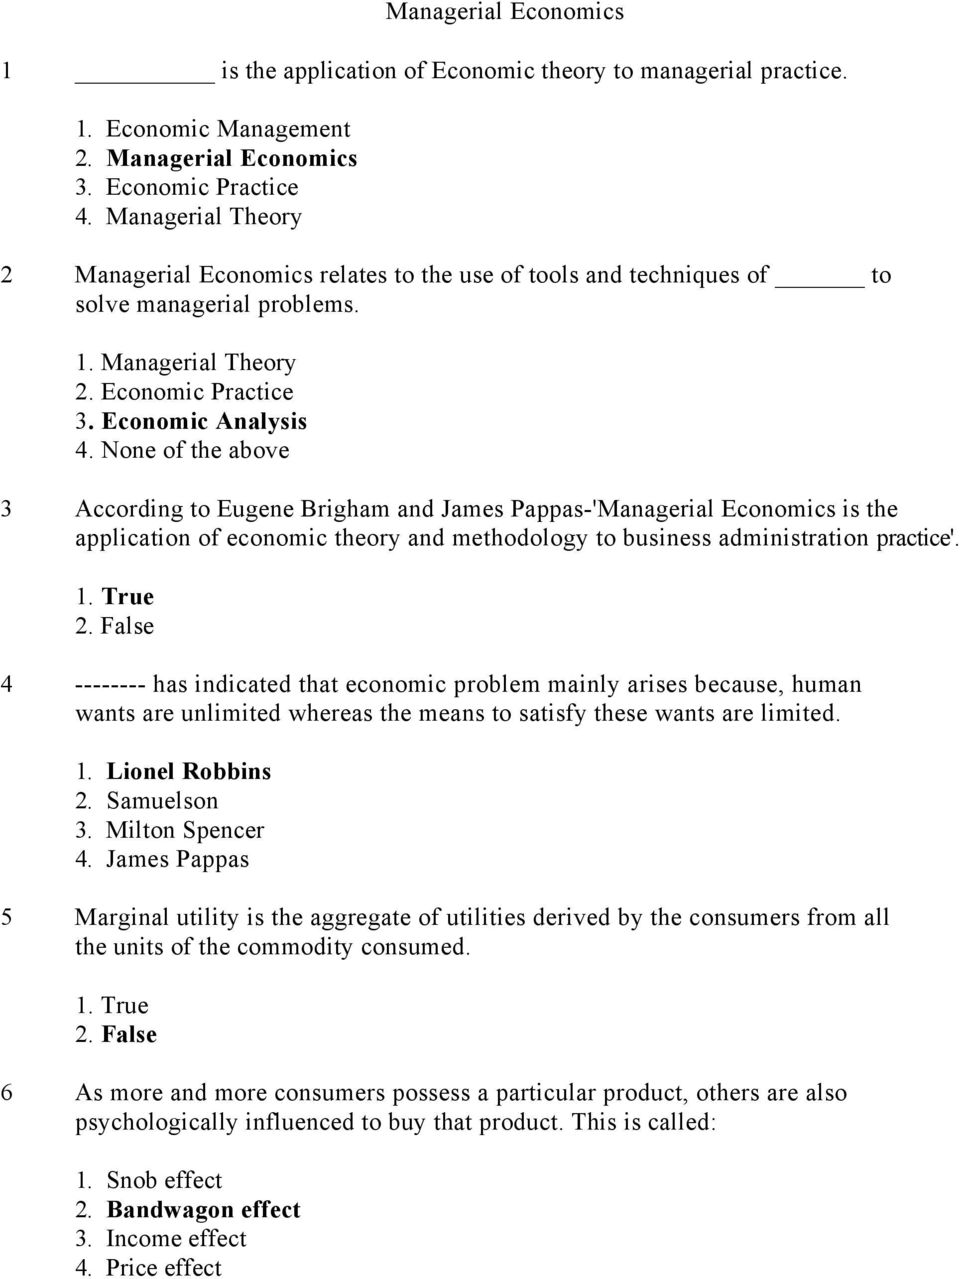 Economic Analysis 3 According to Eugene Brigham and James Pappas-'Managerial Economics is the application of economic theory and methodology to business administration practice'.